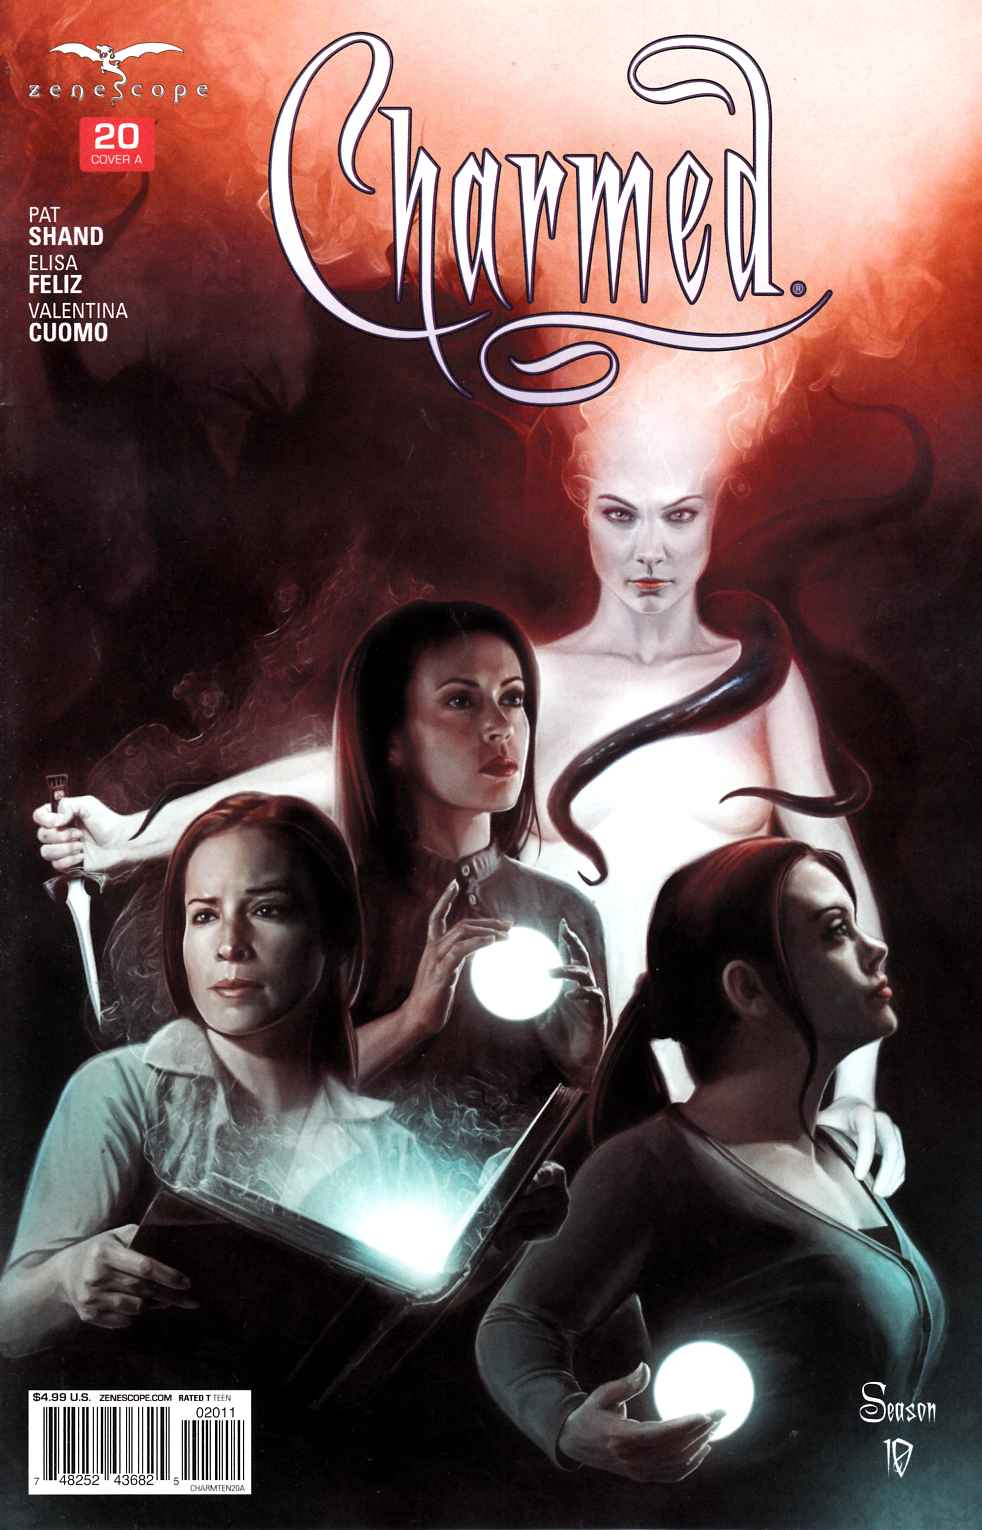 Charmed Season 10 #20 [Zenescope Comic] THUMBNAIL